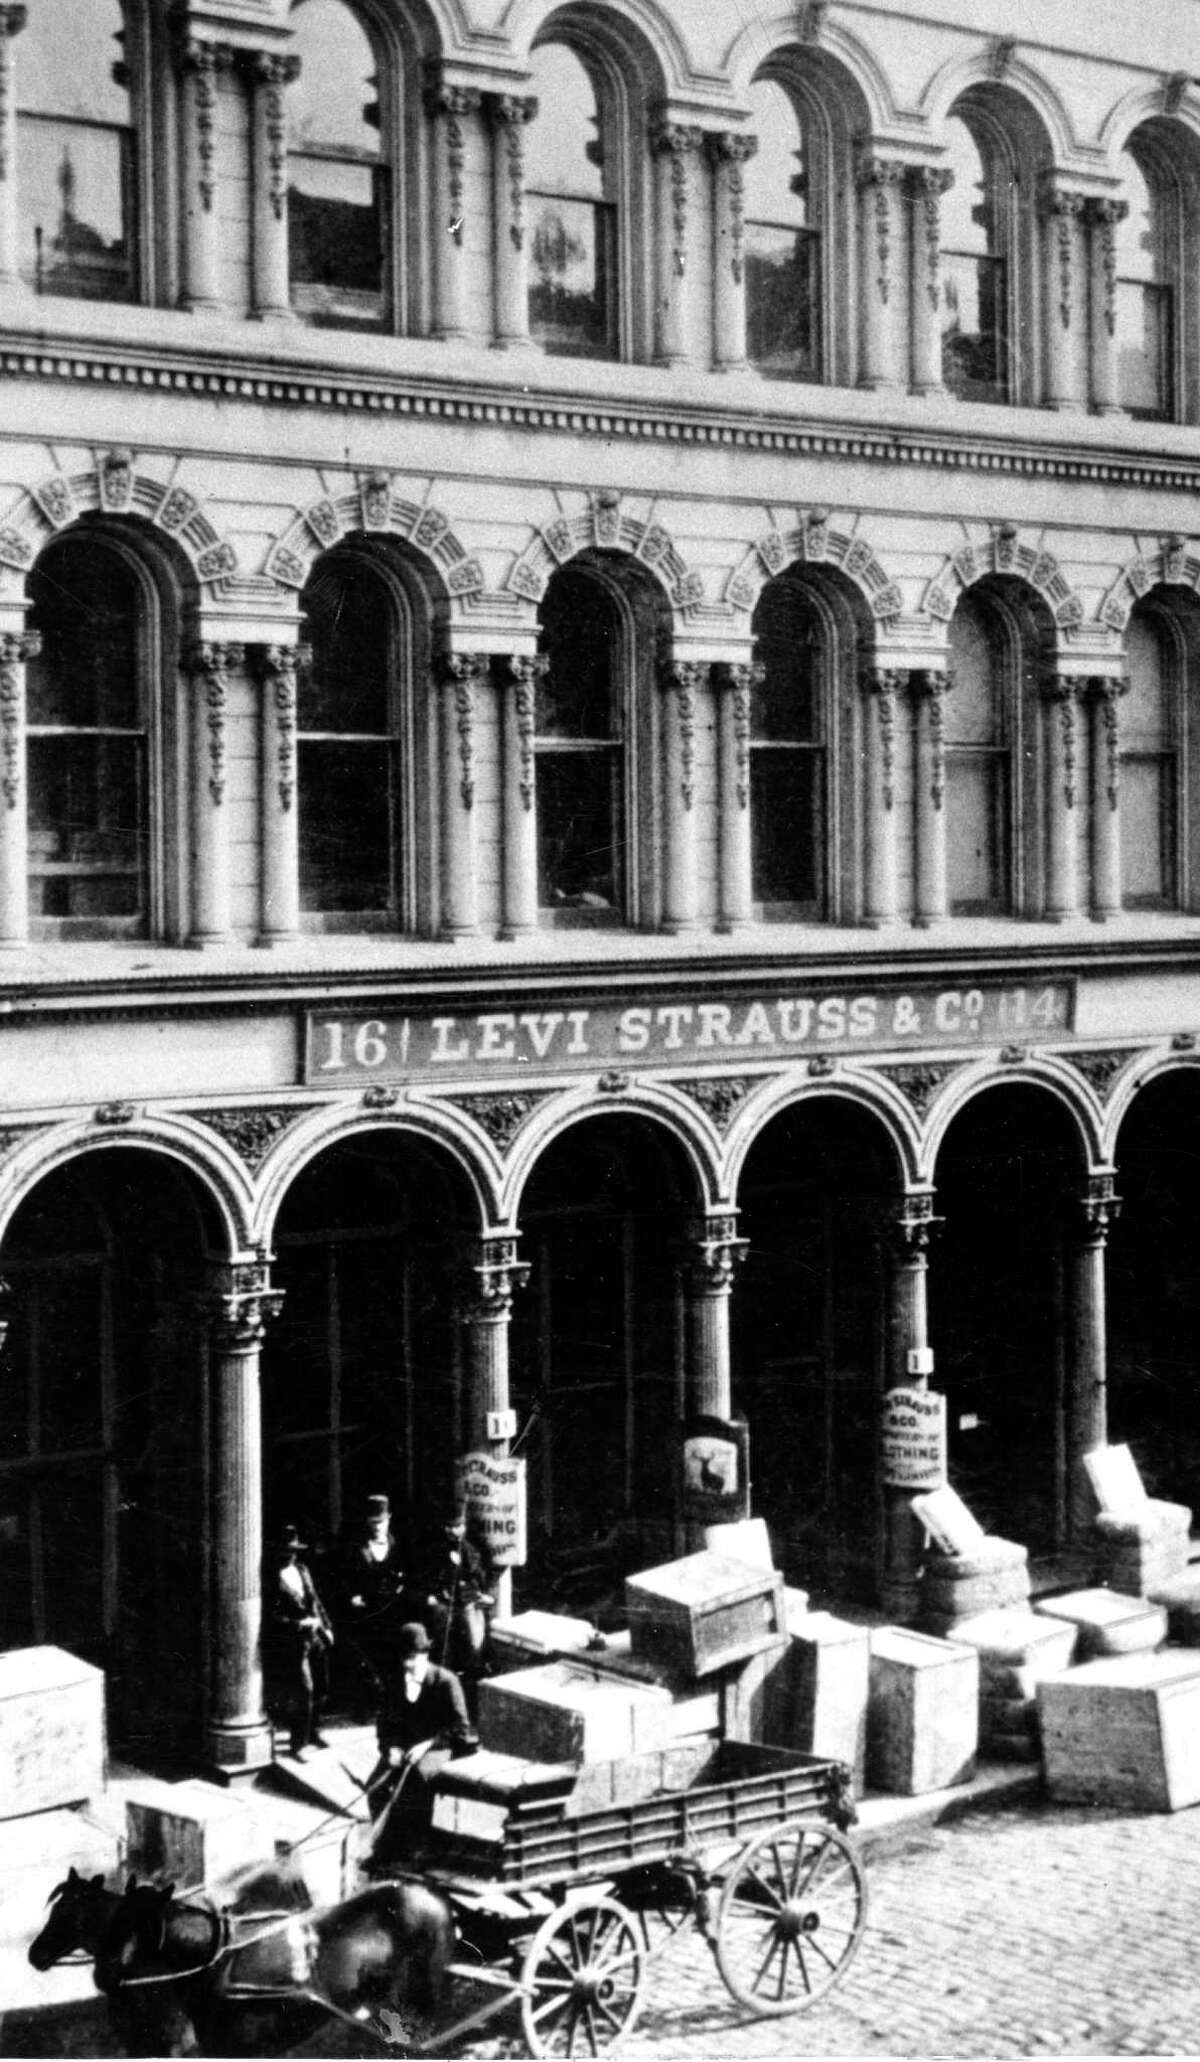 The Old Levi Strauss Co. building was destroyed in 1906 in San Francisco.